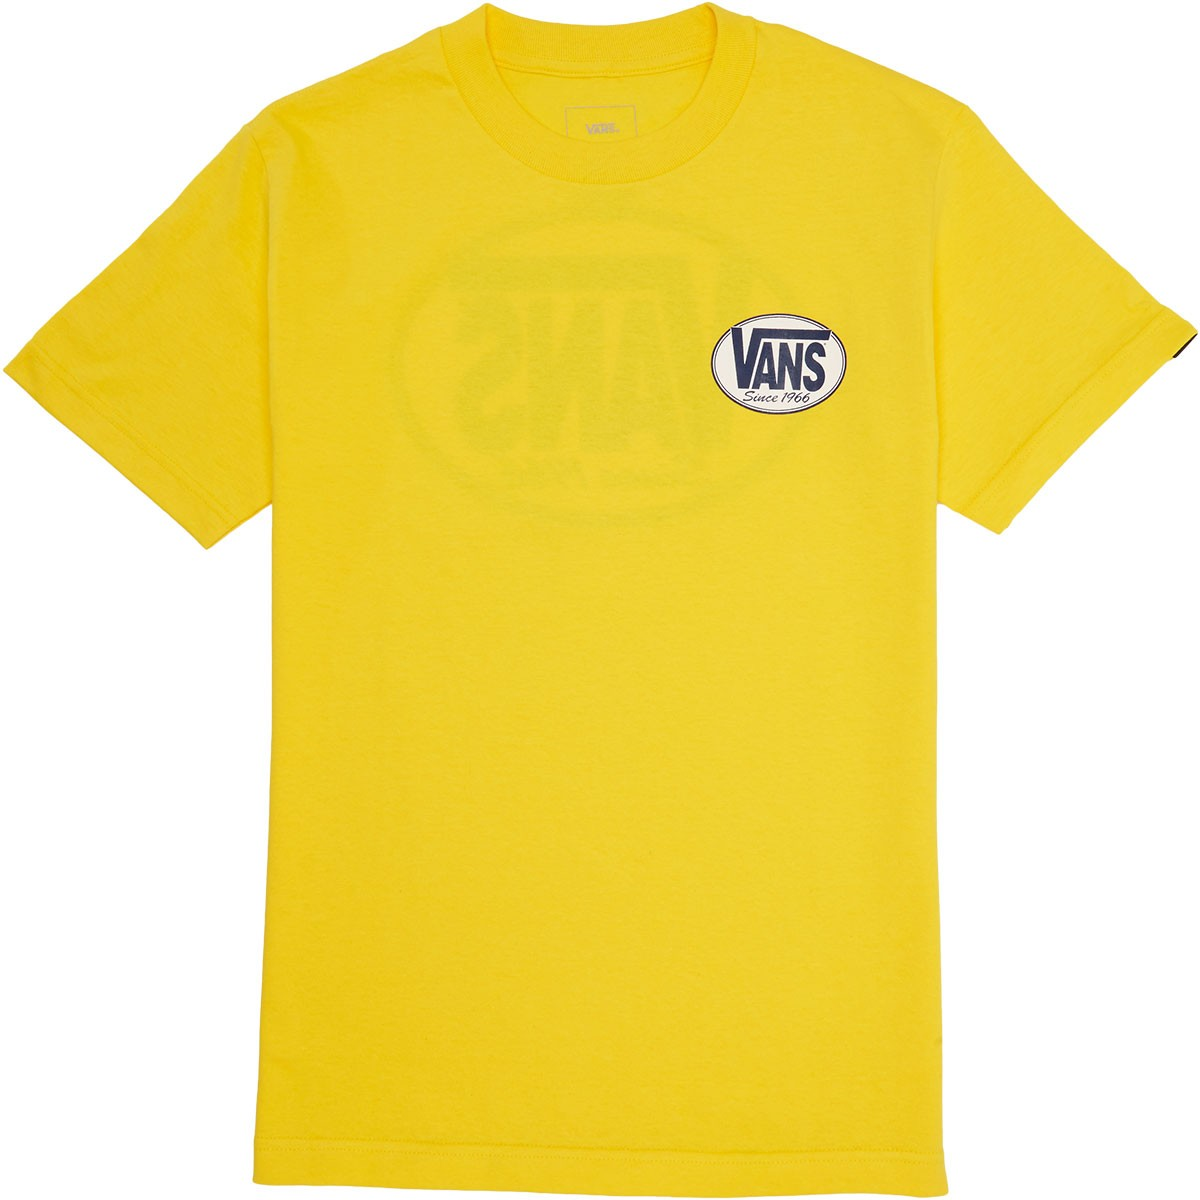 9df930360efe89 Vans Oval All T-Shirt - Yellow